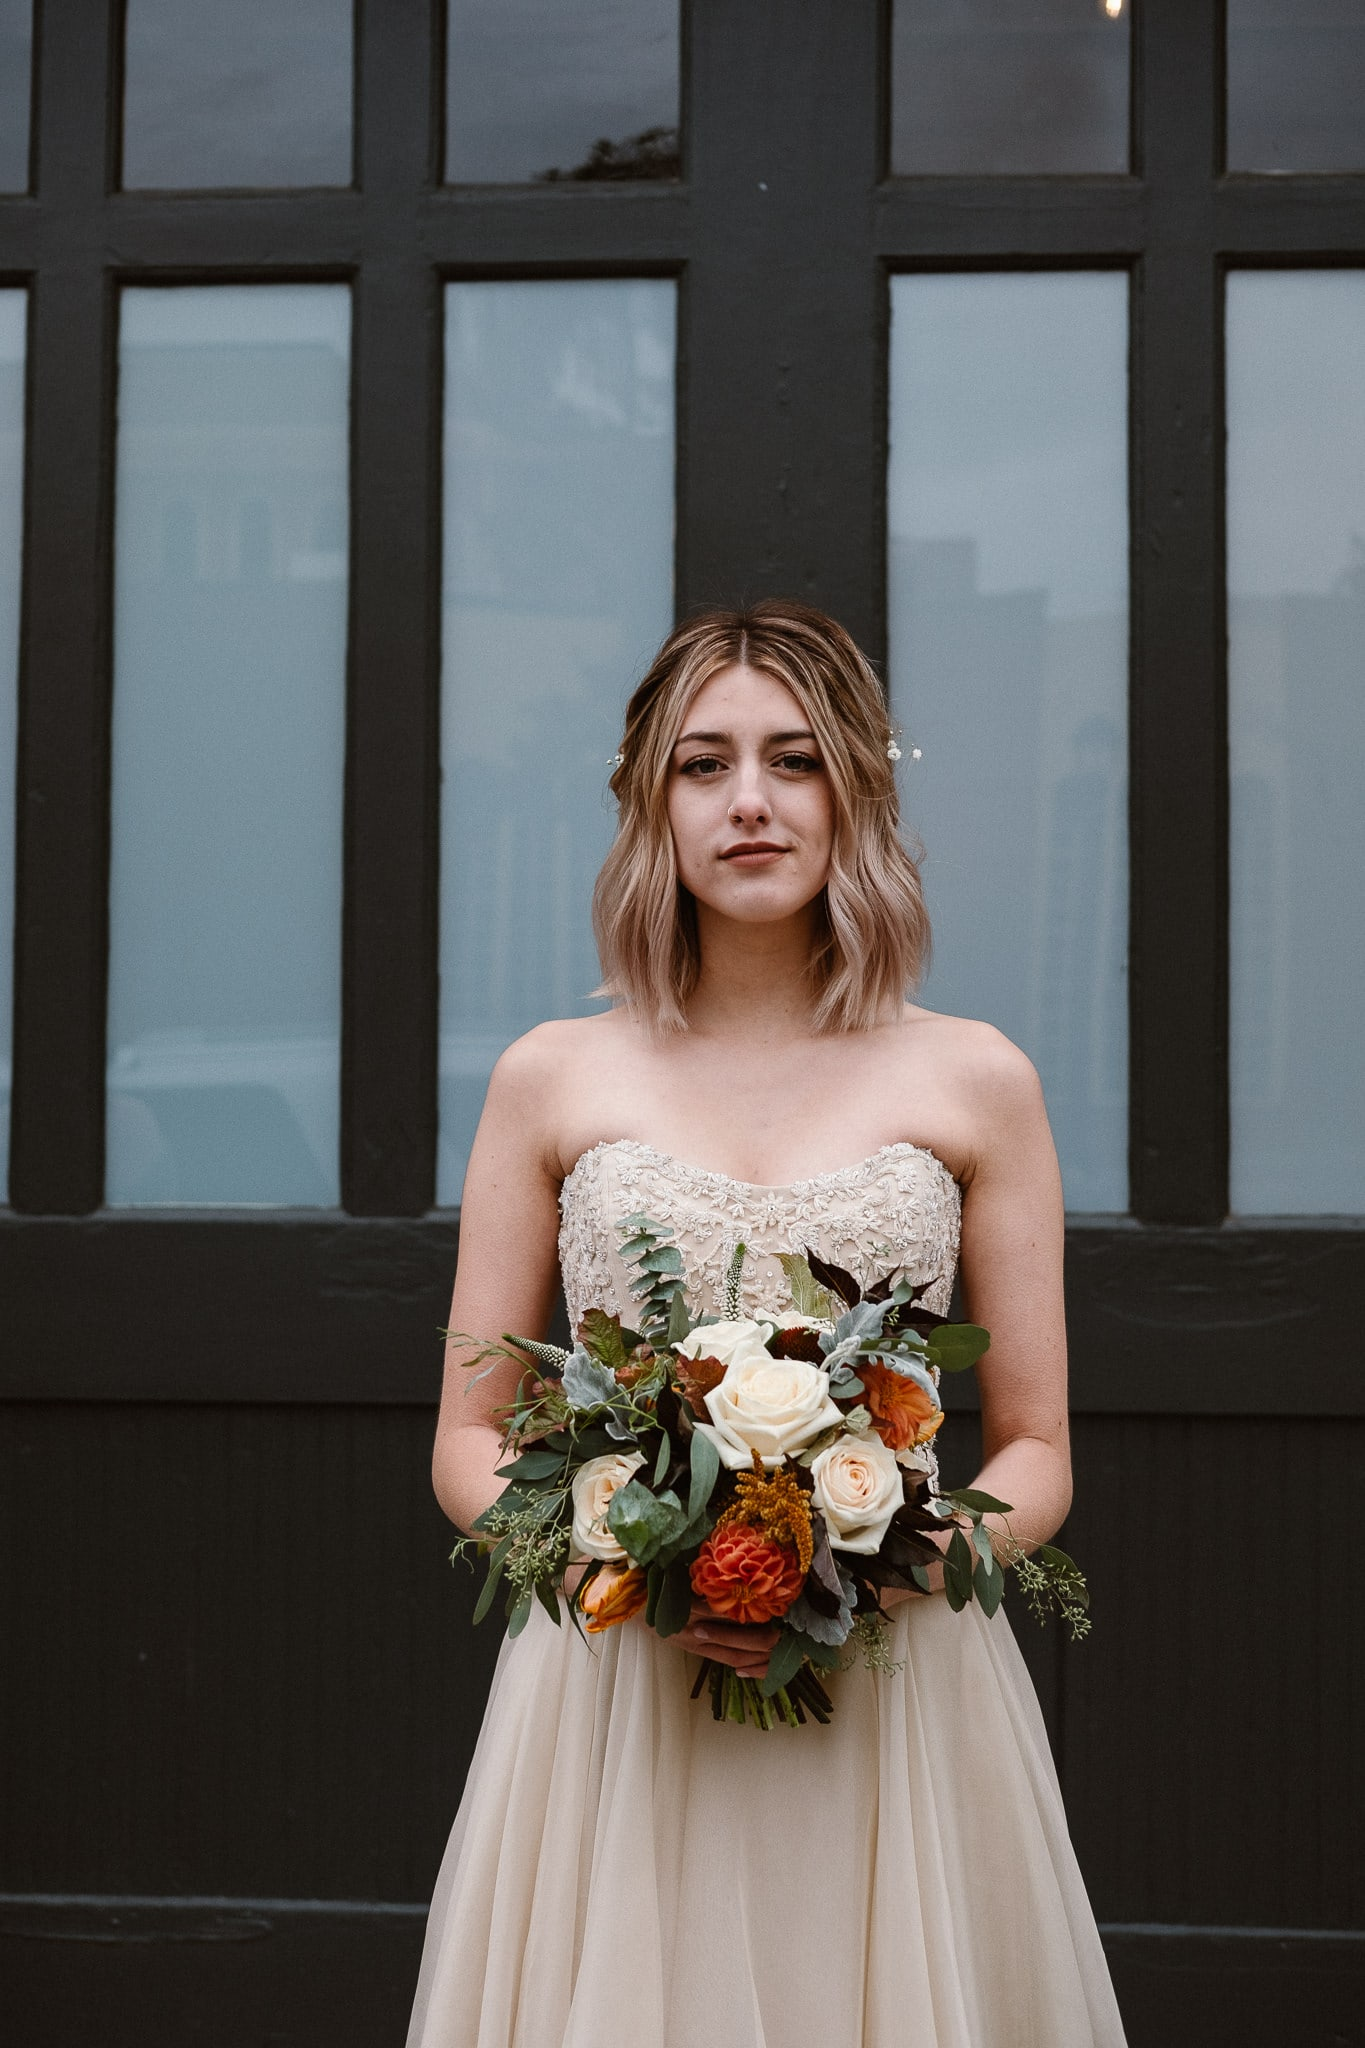 St Vrain Wedding Photographer | Longmont Wedding Photographer | Colorado Winter Wedding Photographer, Colorado industrial chic wedding, bride portrait, bridal portrait, Marchesa wedding gown